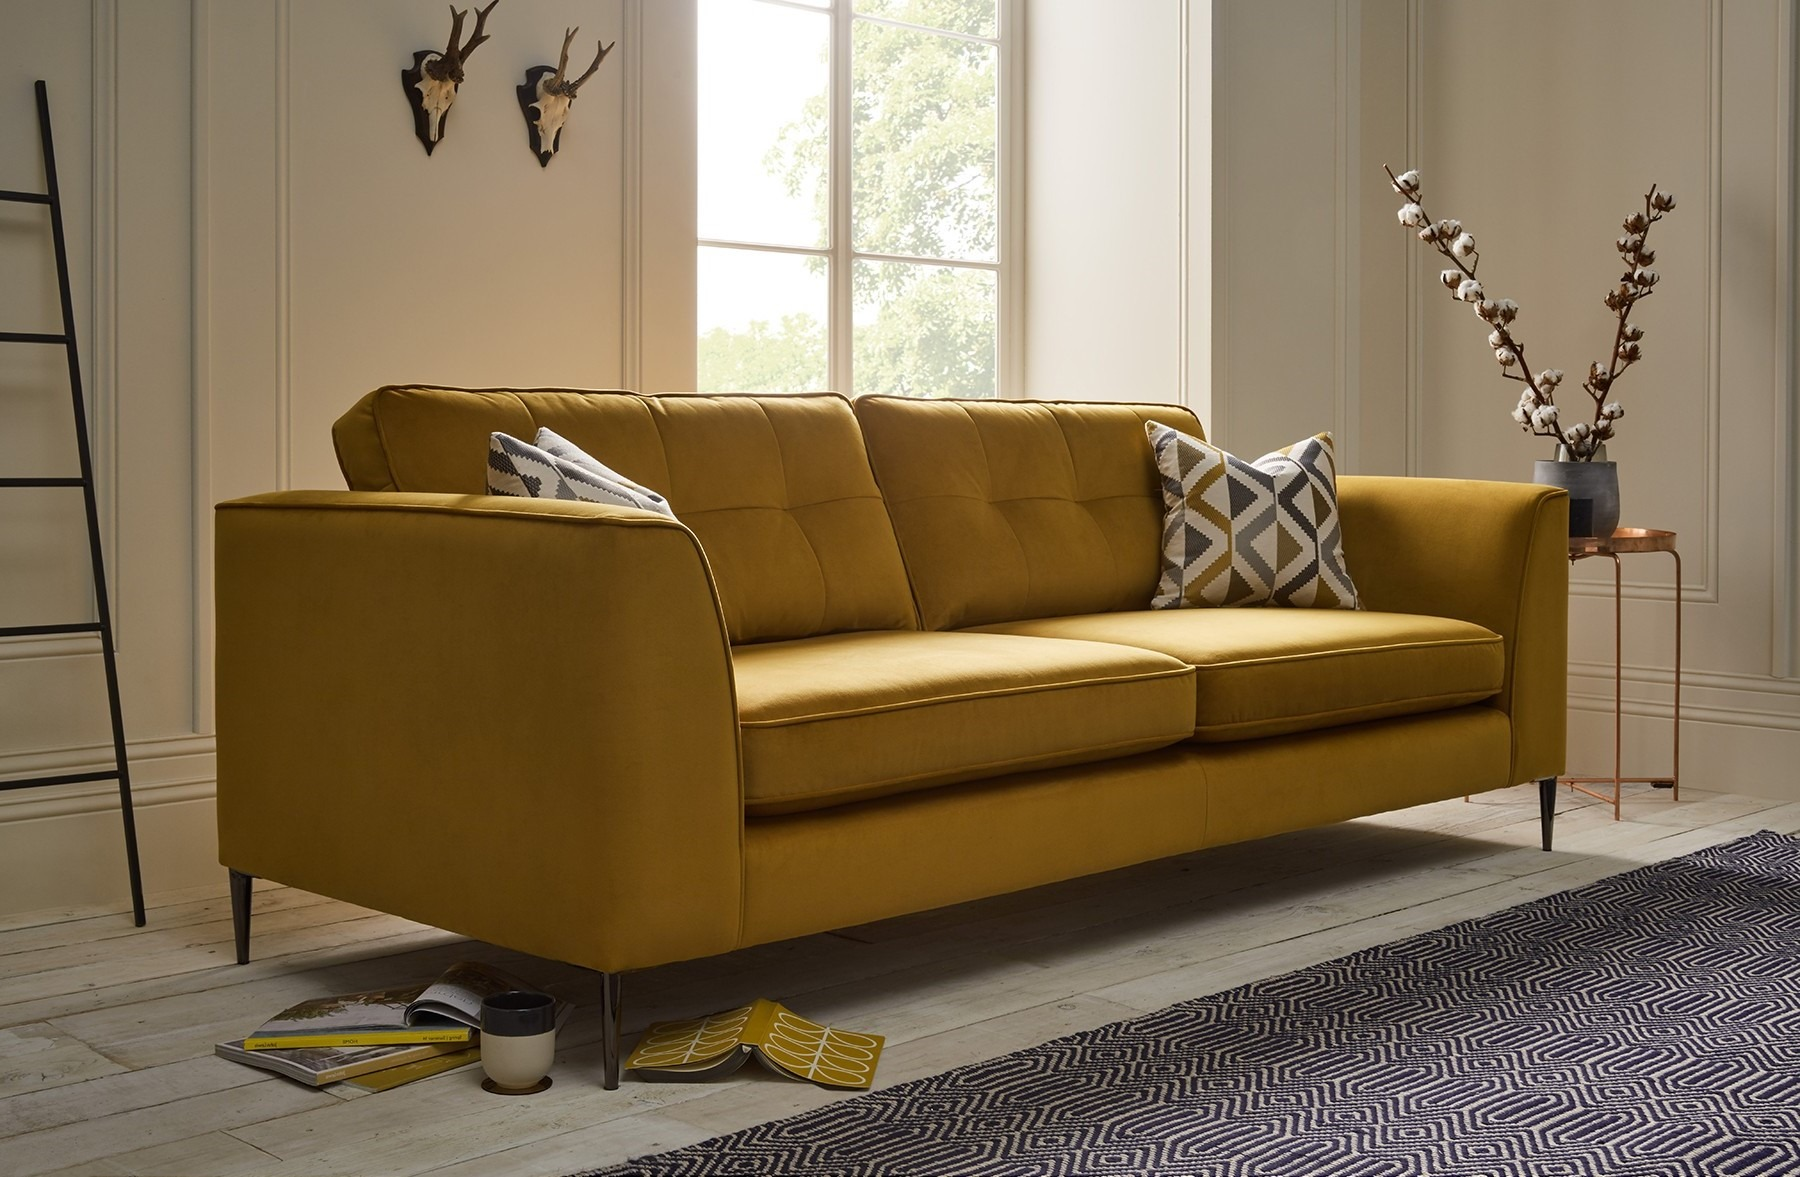 GOTHENBURG XL SOFA - L230cmx D100cm x H86cm